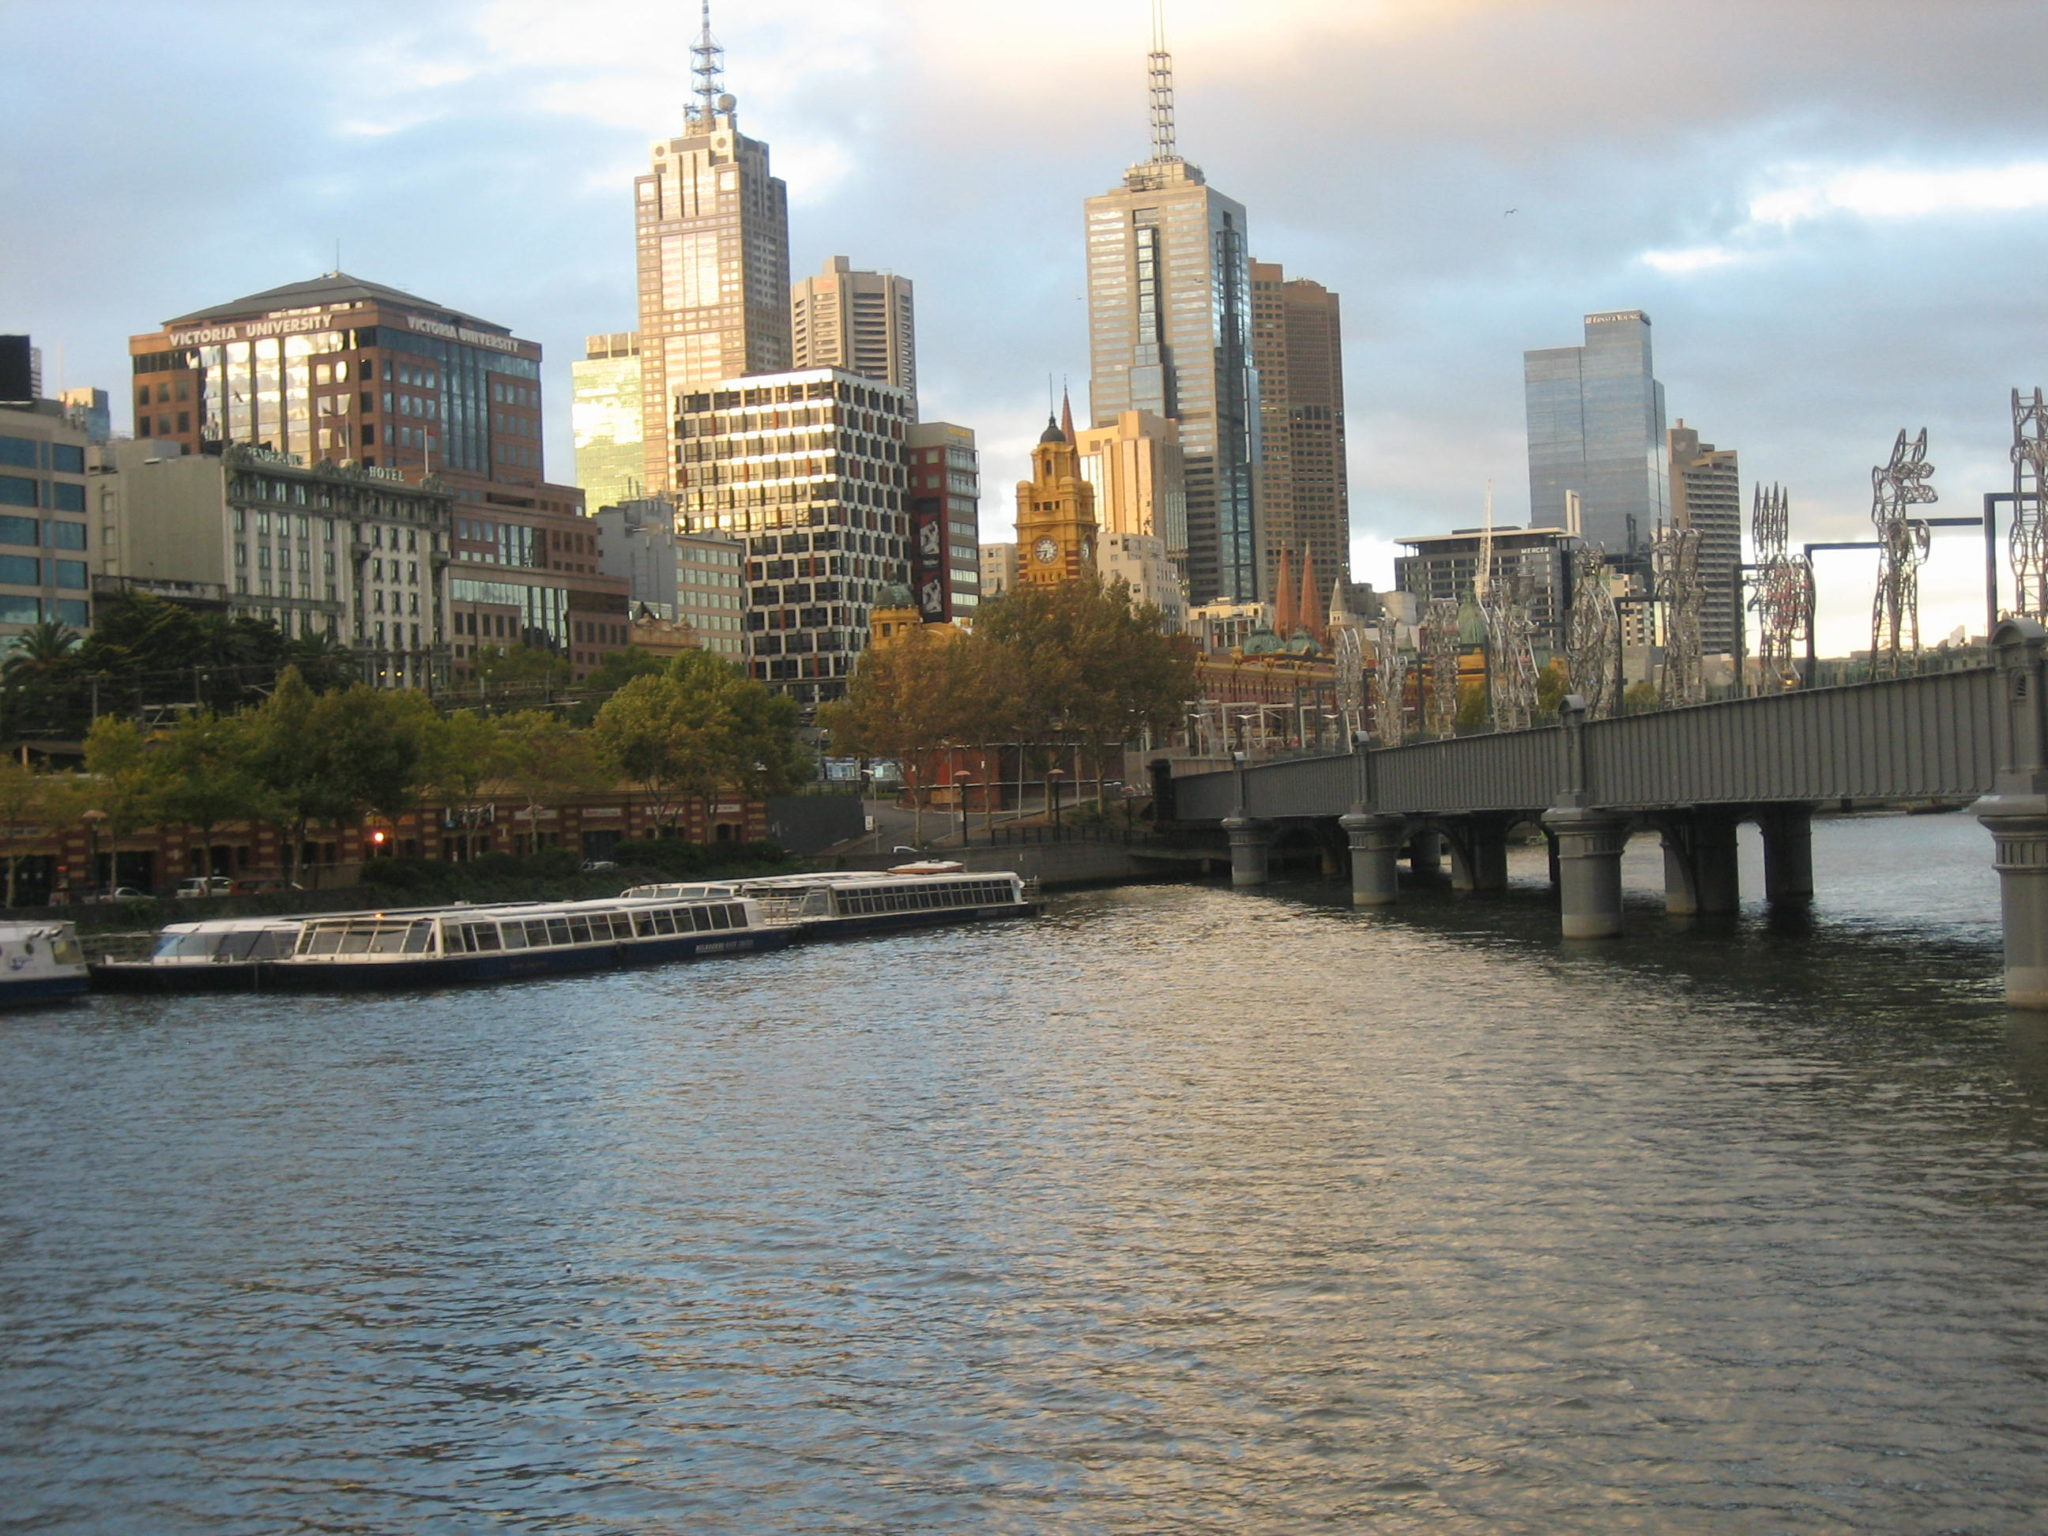 PIC 1 - Yarra waterfront